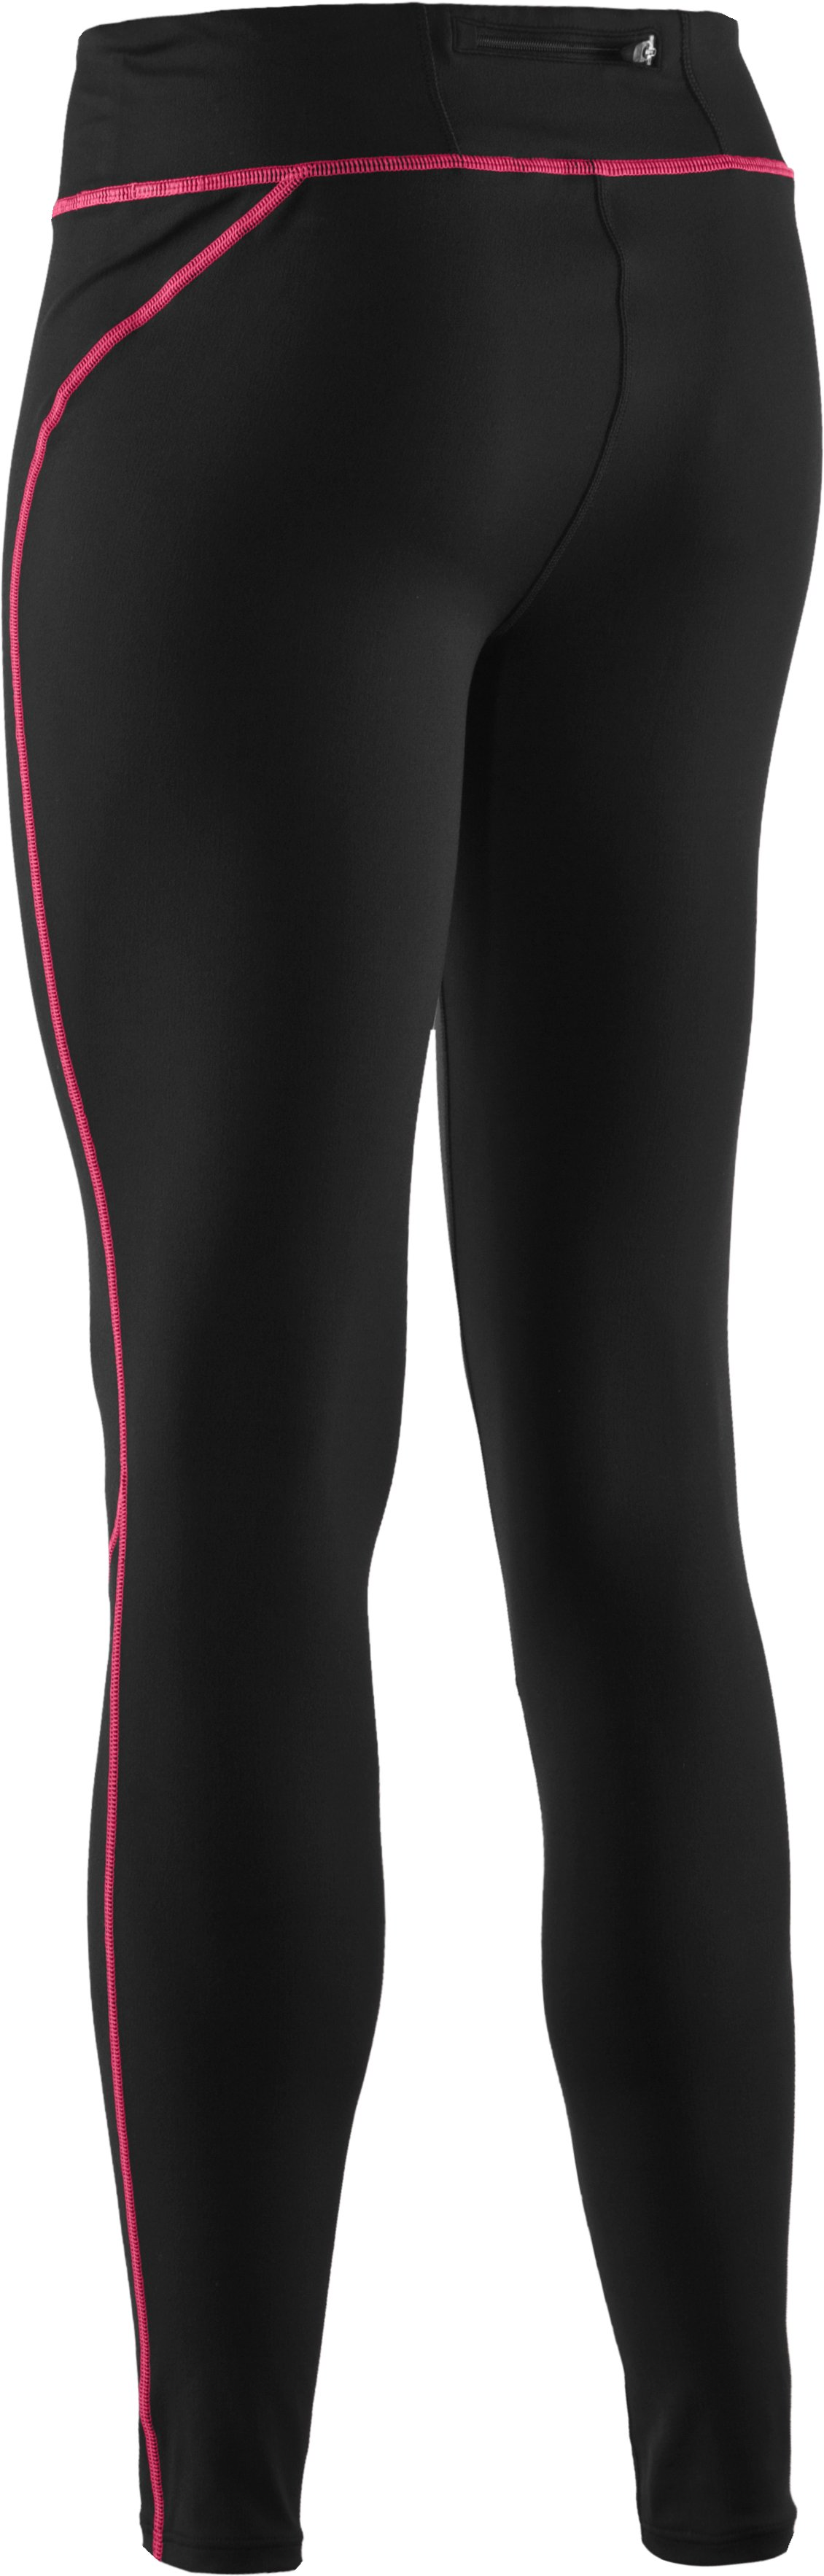 Women's AllSeasonGear® Run Fitted Tights, Black ,